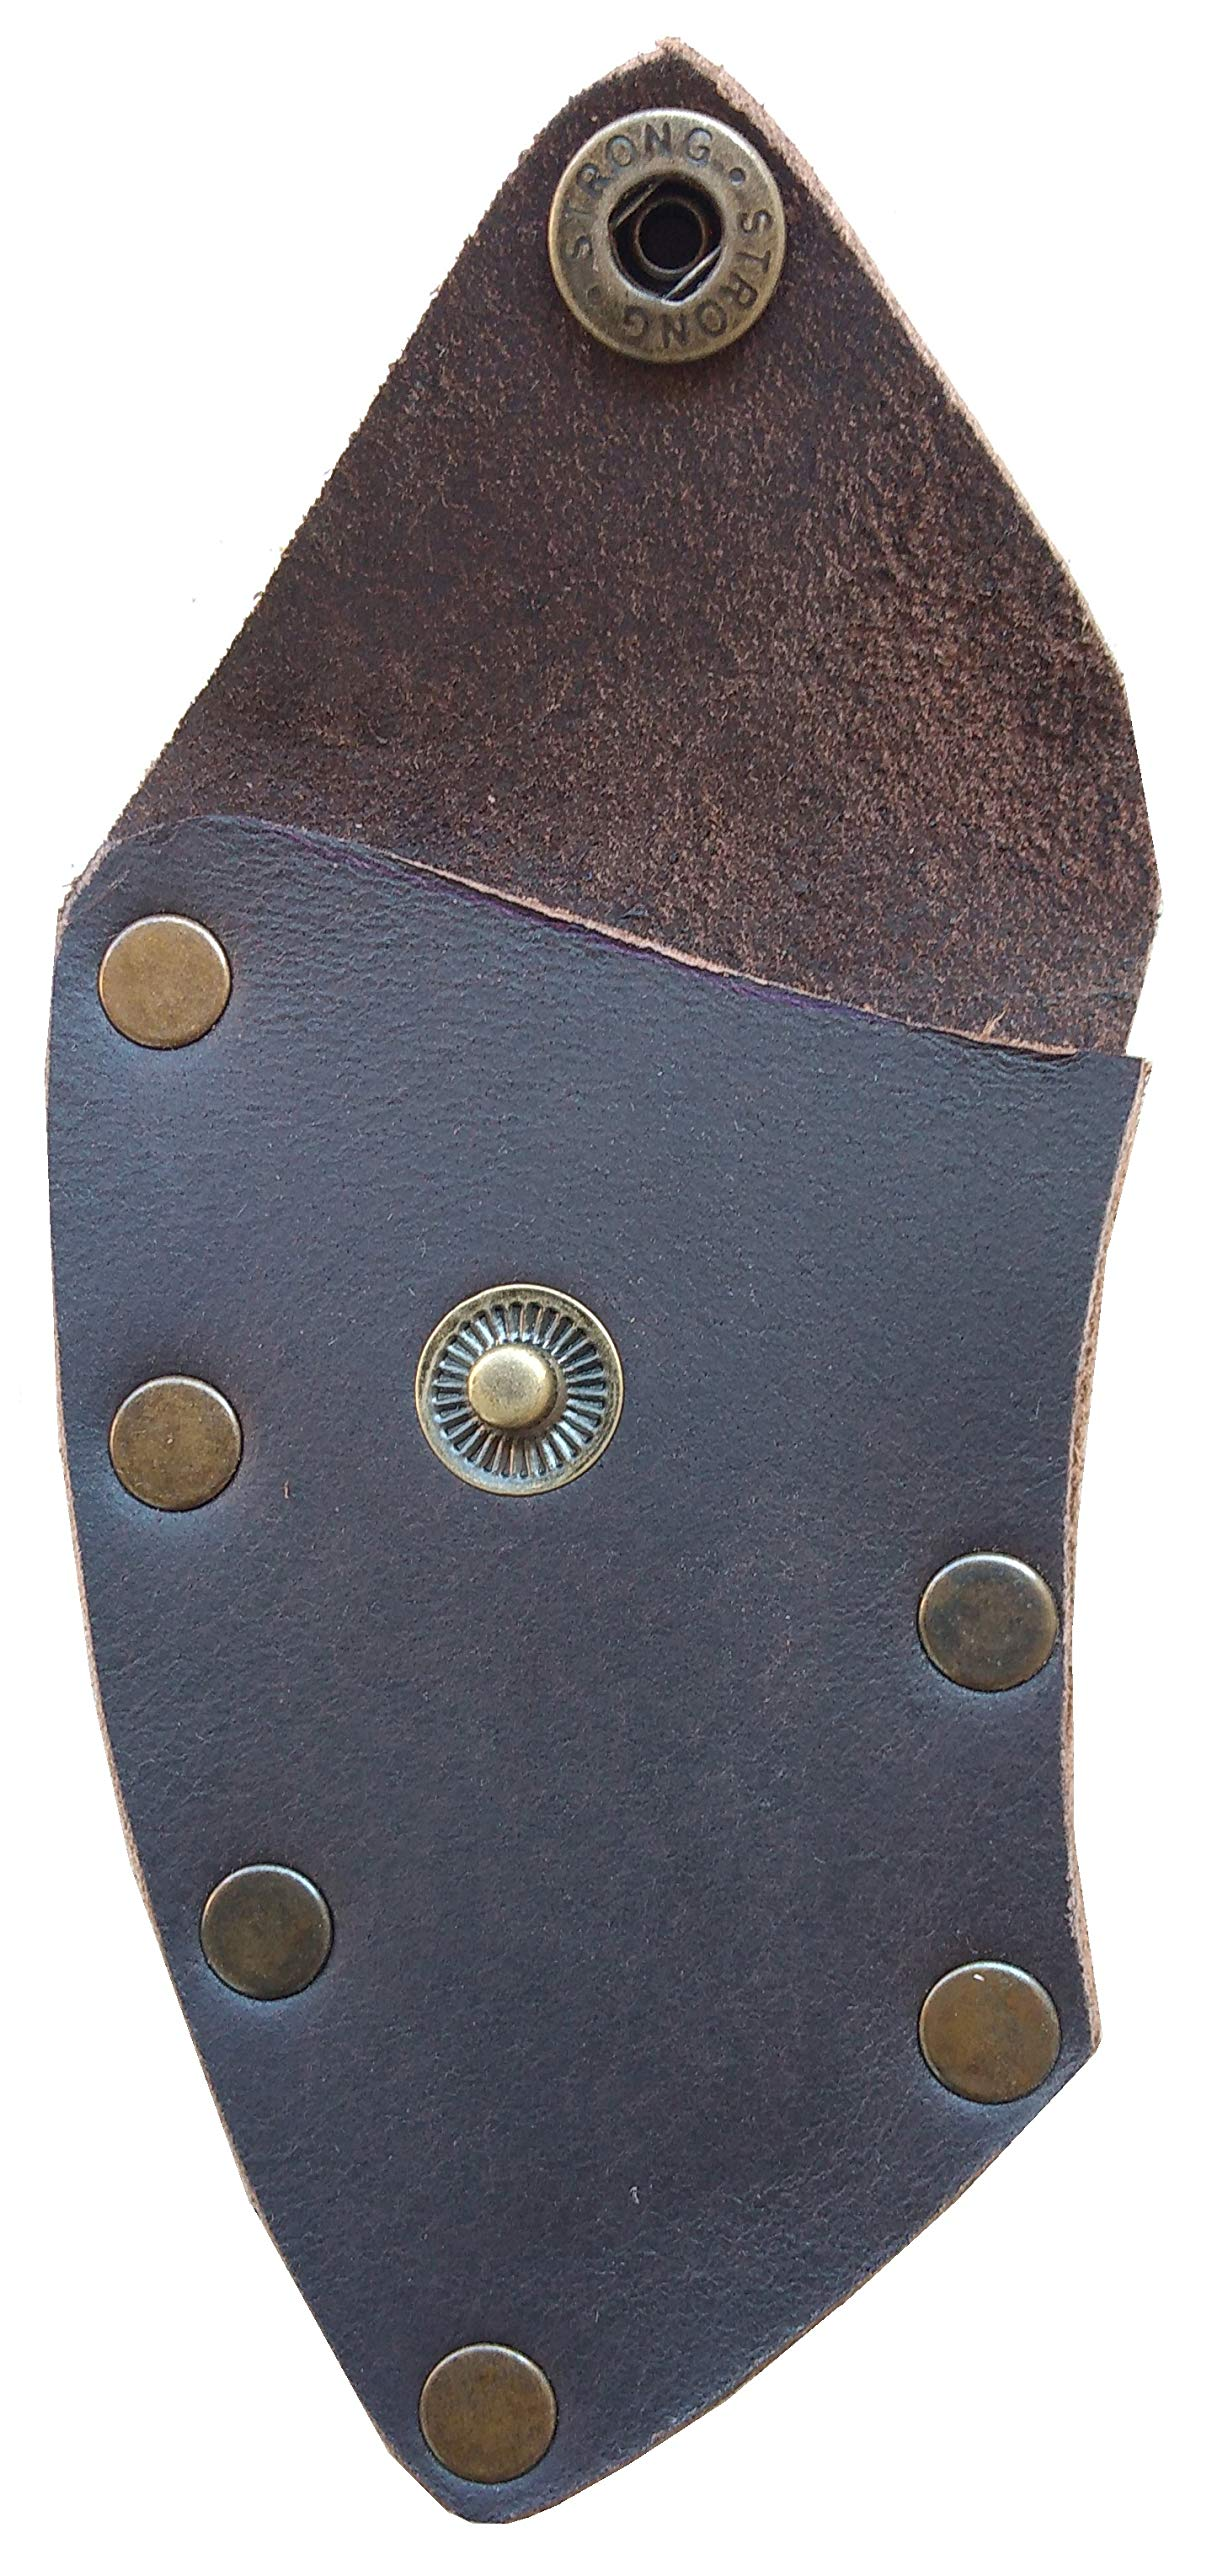 Leather sheath for the small axe by mapsyst (Image #2)